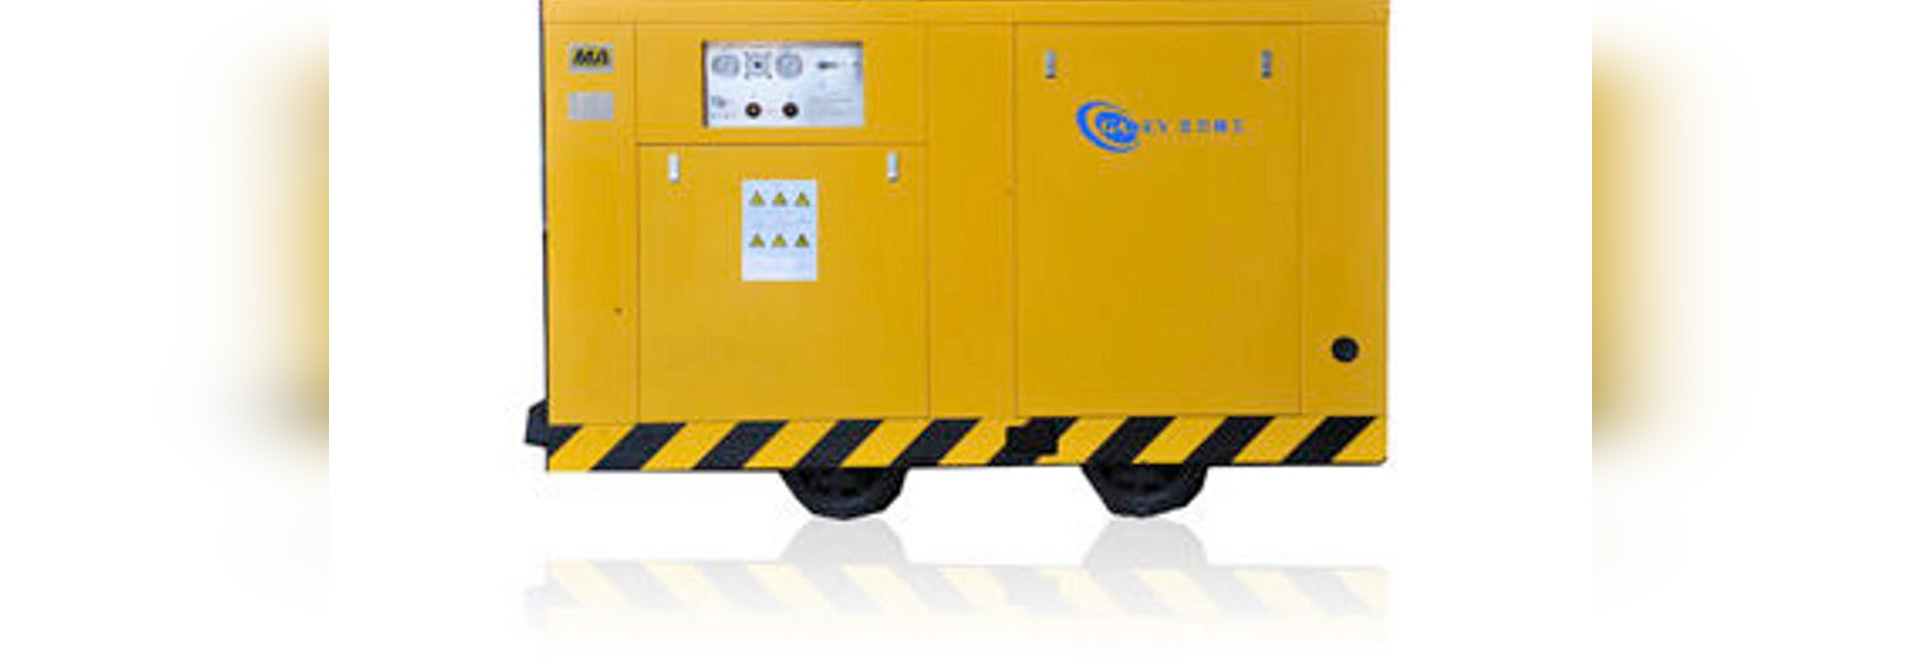 Air Compressor Screw Oil Injected Mobile Guangdong Ganey Overvoltage Protected Control